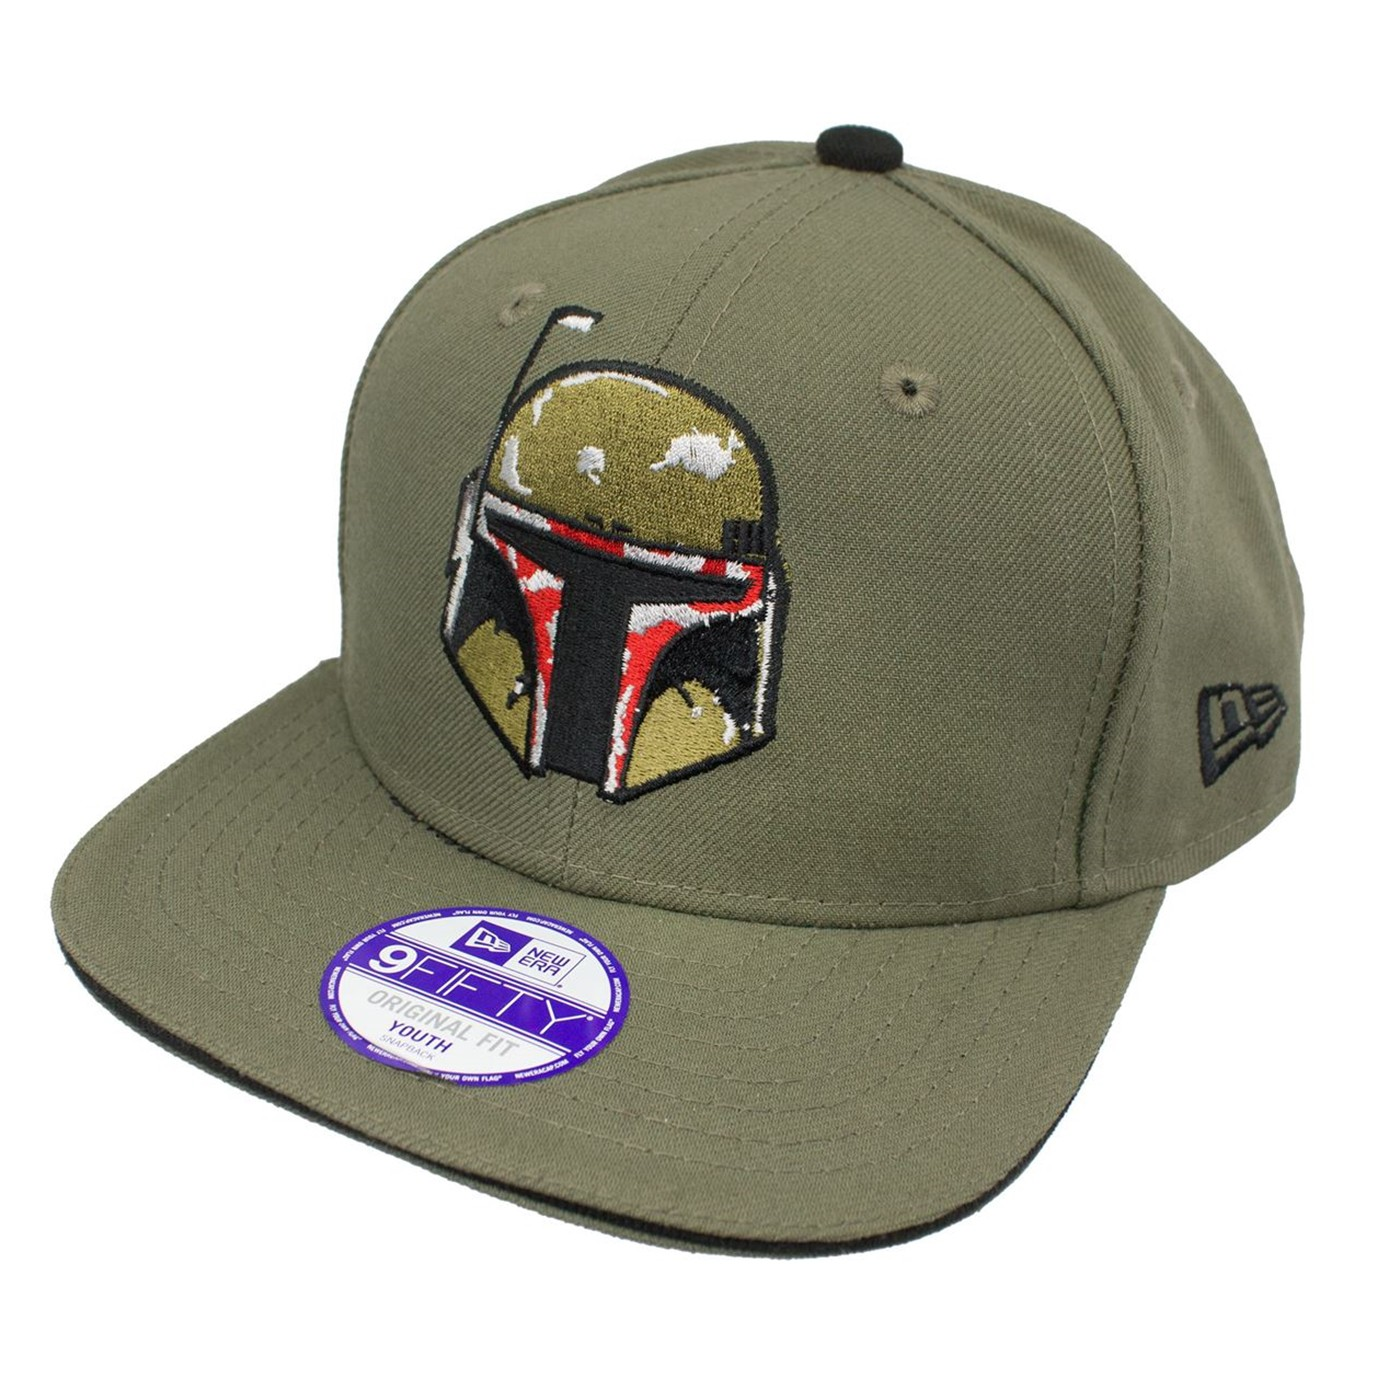 Star Wars Boba Fett New Era Kids 9Fifty Youth Adjustable Hat